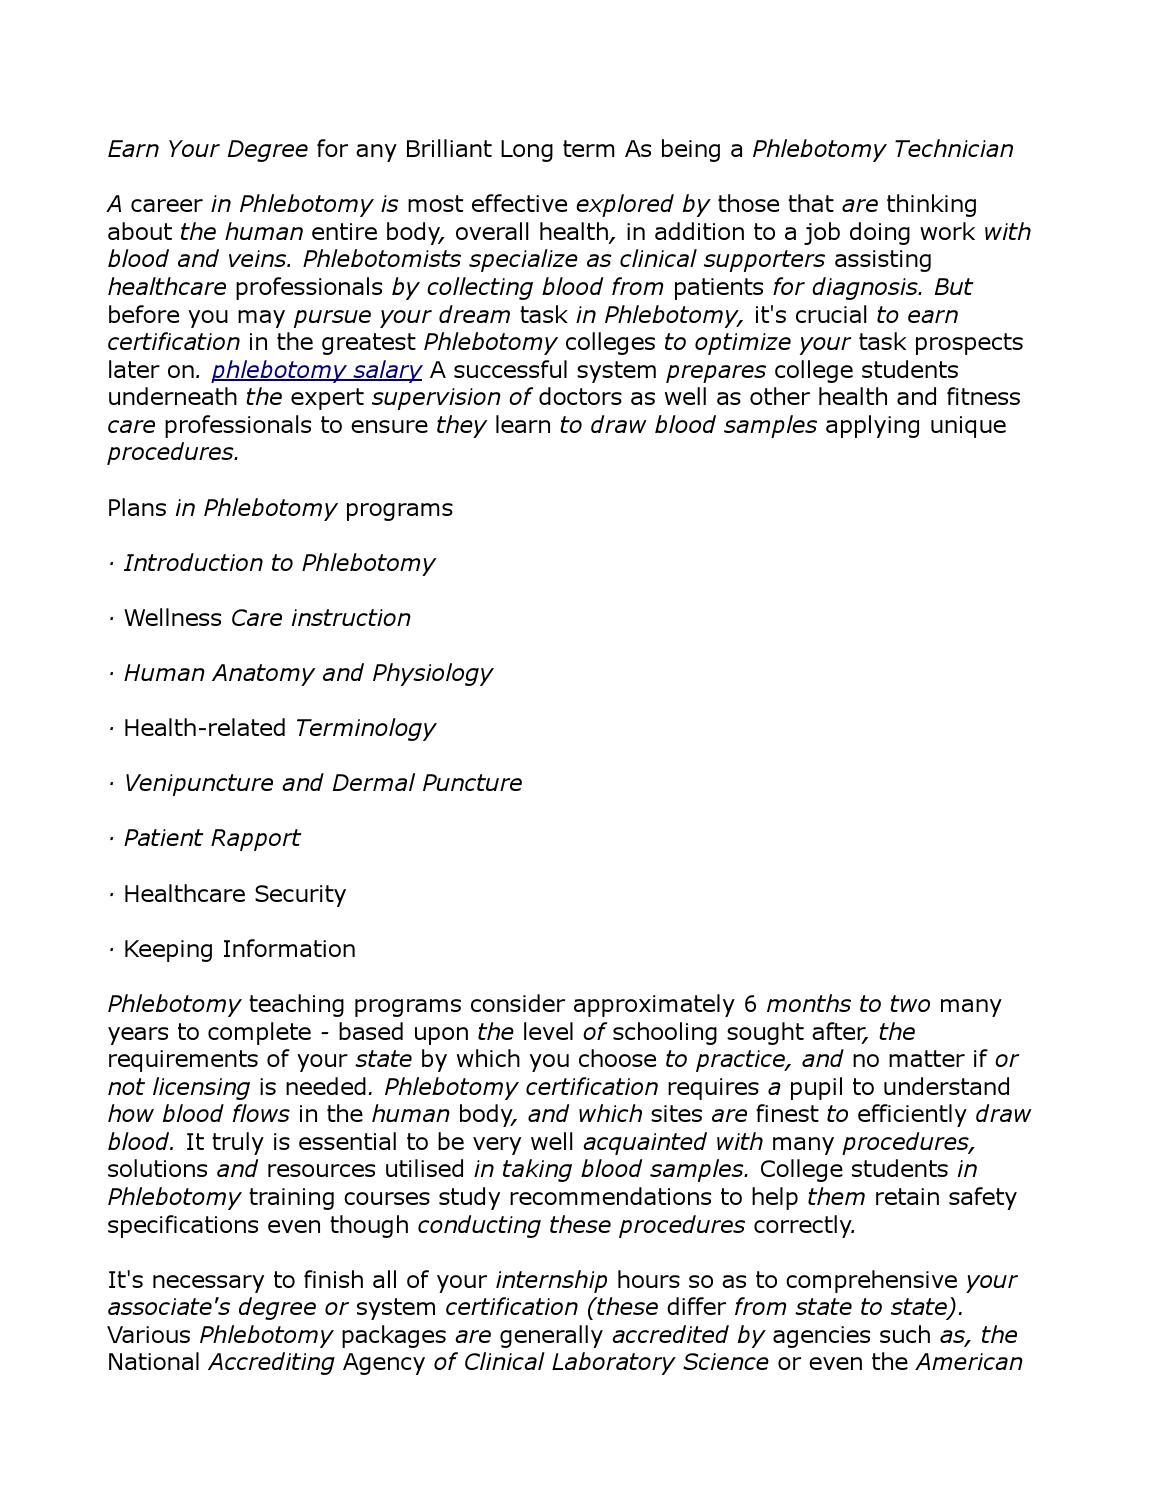 Phlebotomy Salary 23 By Annette2724 Issuu